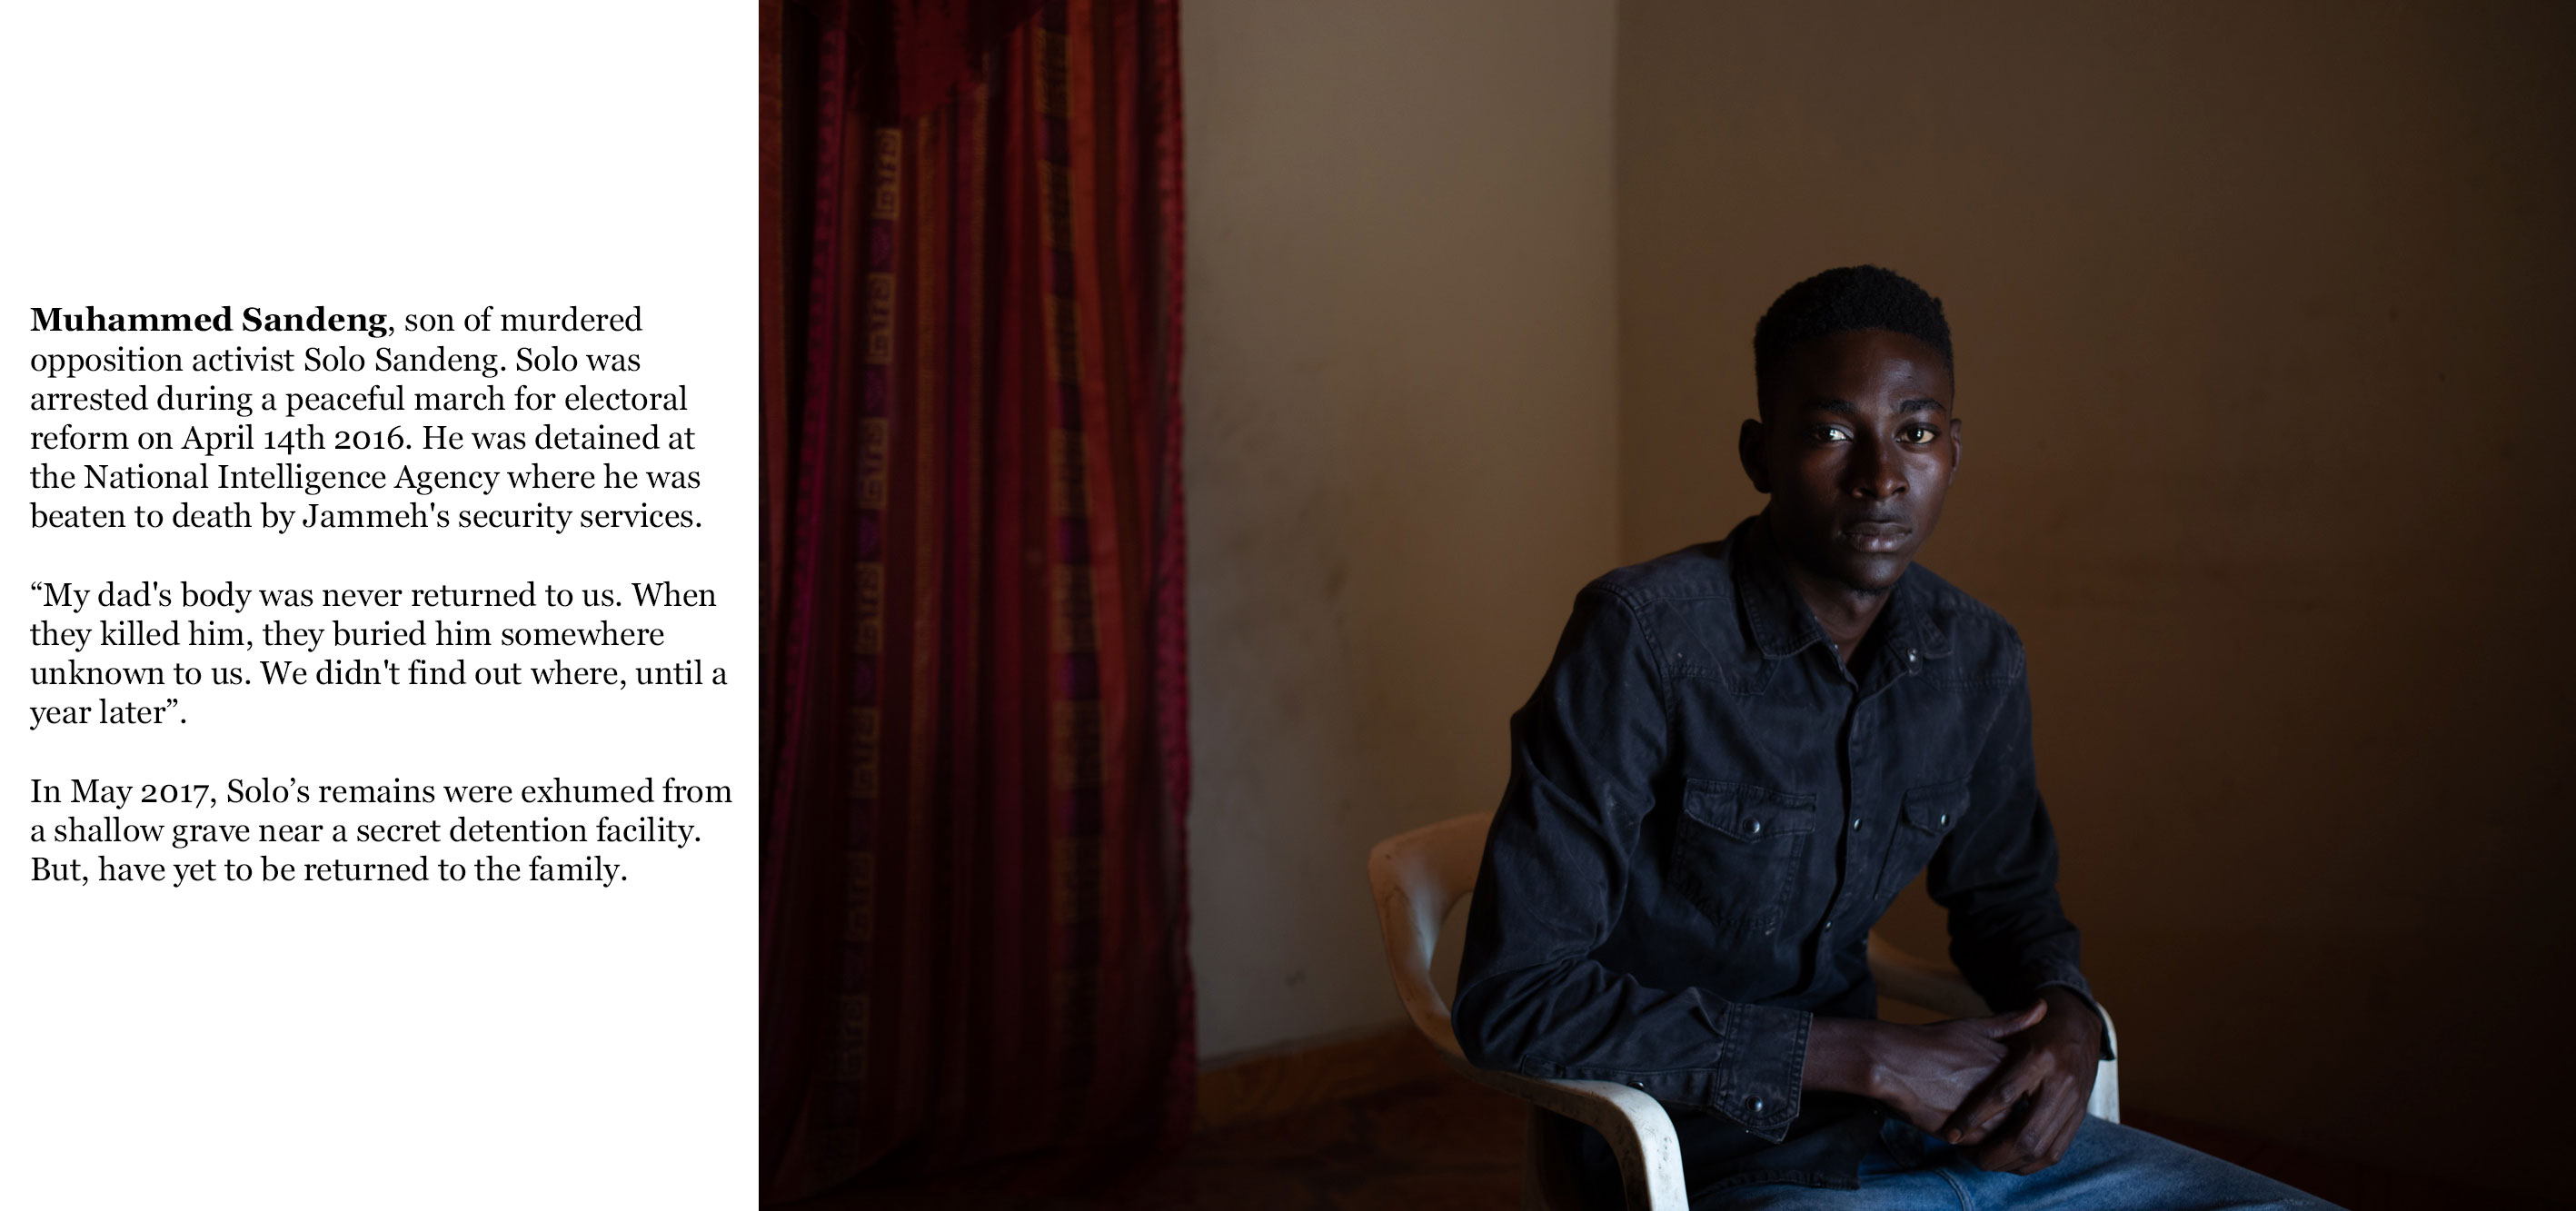 Gambia victims and resisters -muhammed_sandeng, son of murdered opposition leader, Solo Sandeng-0723_TEXT_WEB